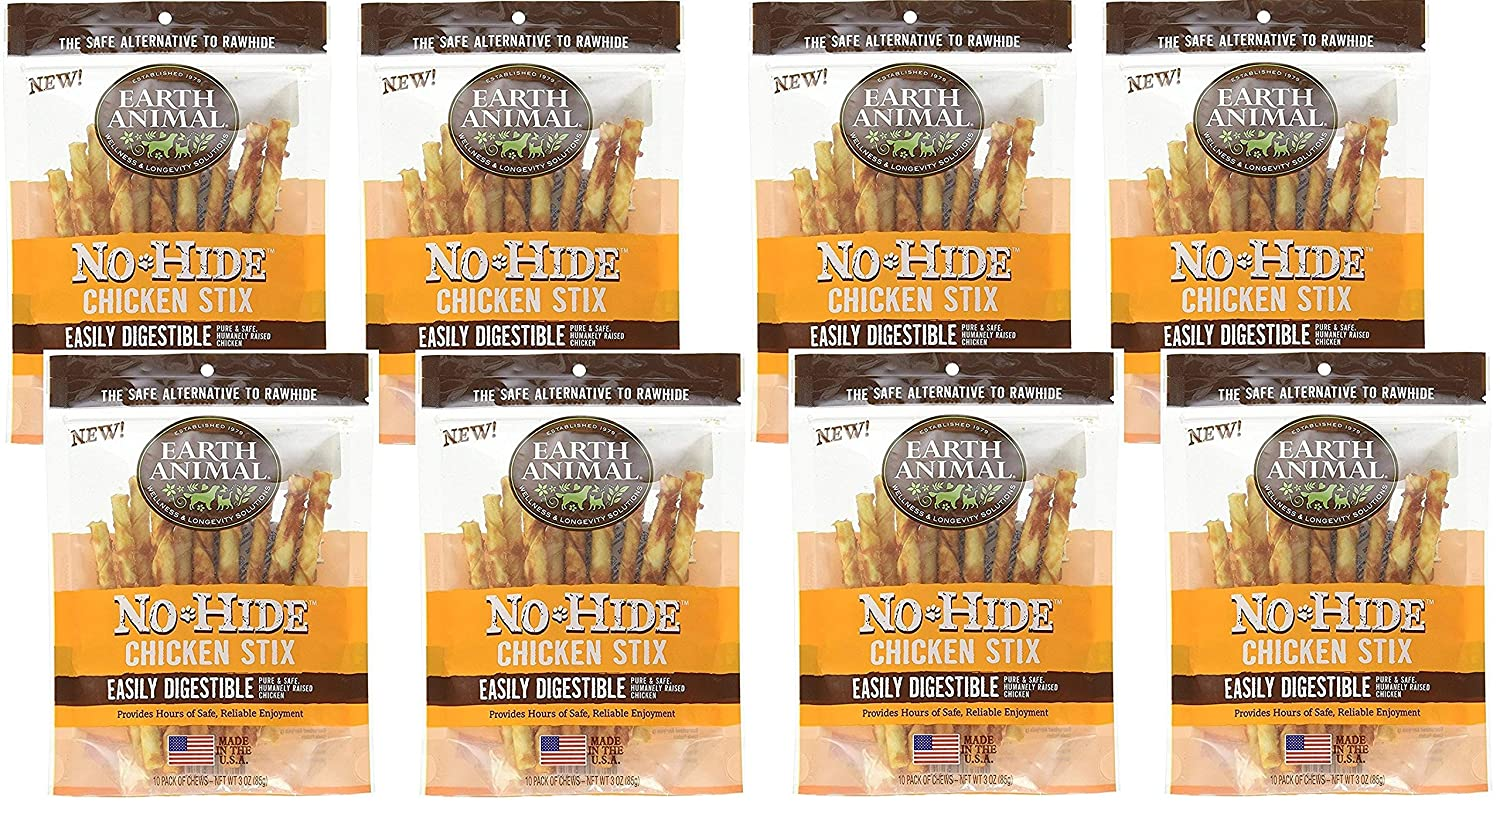 Earth Animal 8 Pack of No-Hide 4.5 Chicken Stix Dog Treats, 10 Per Bag